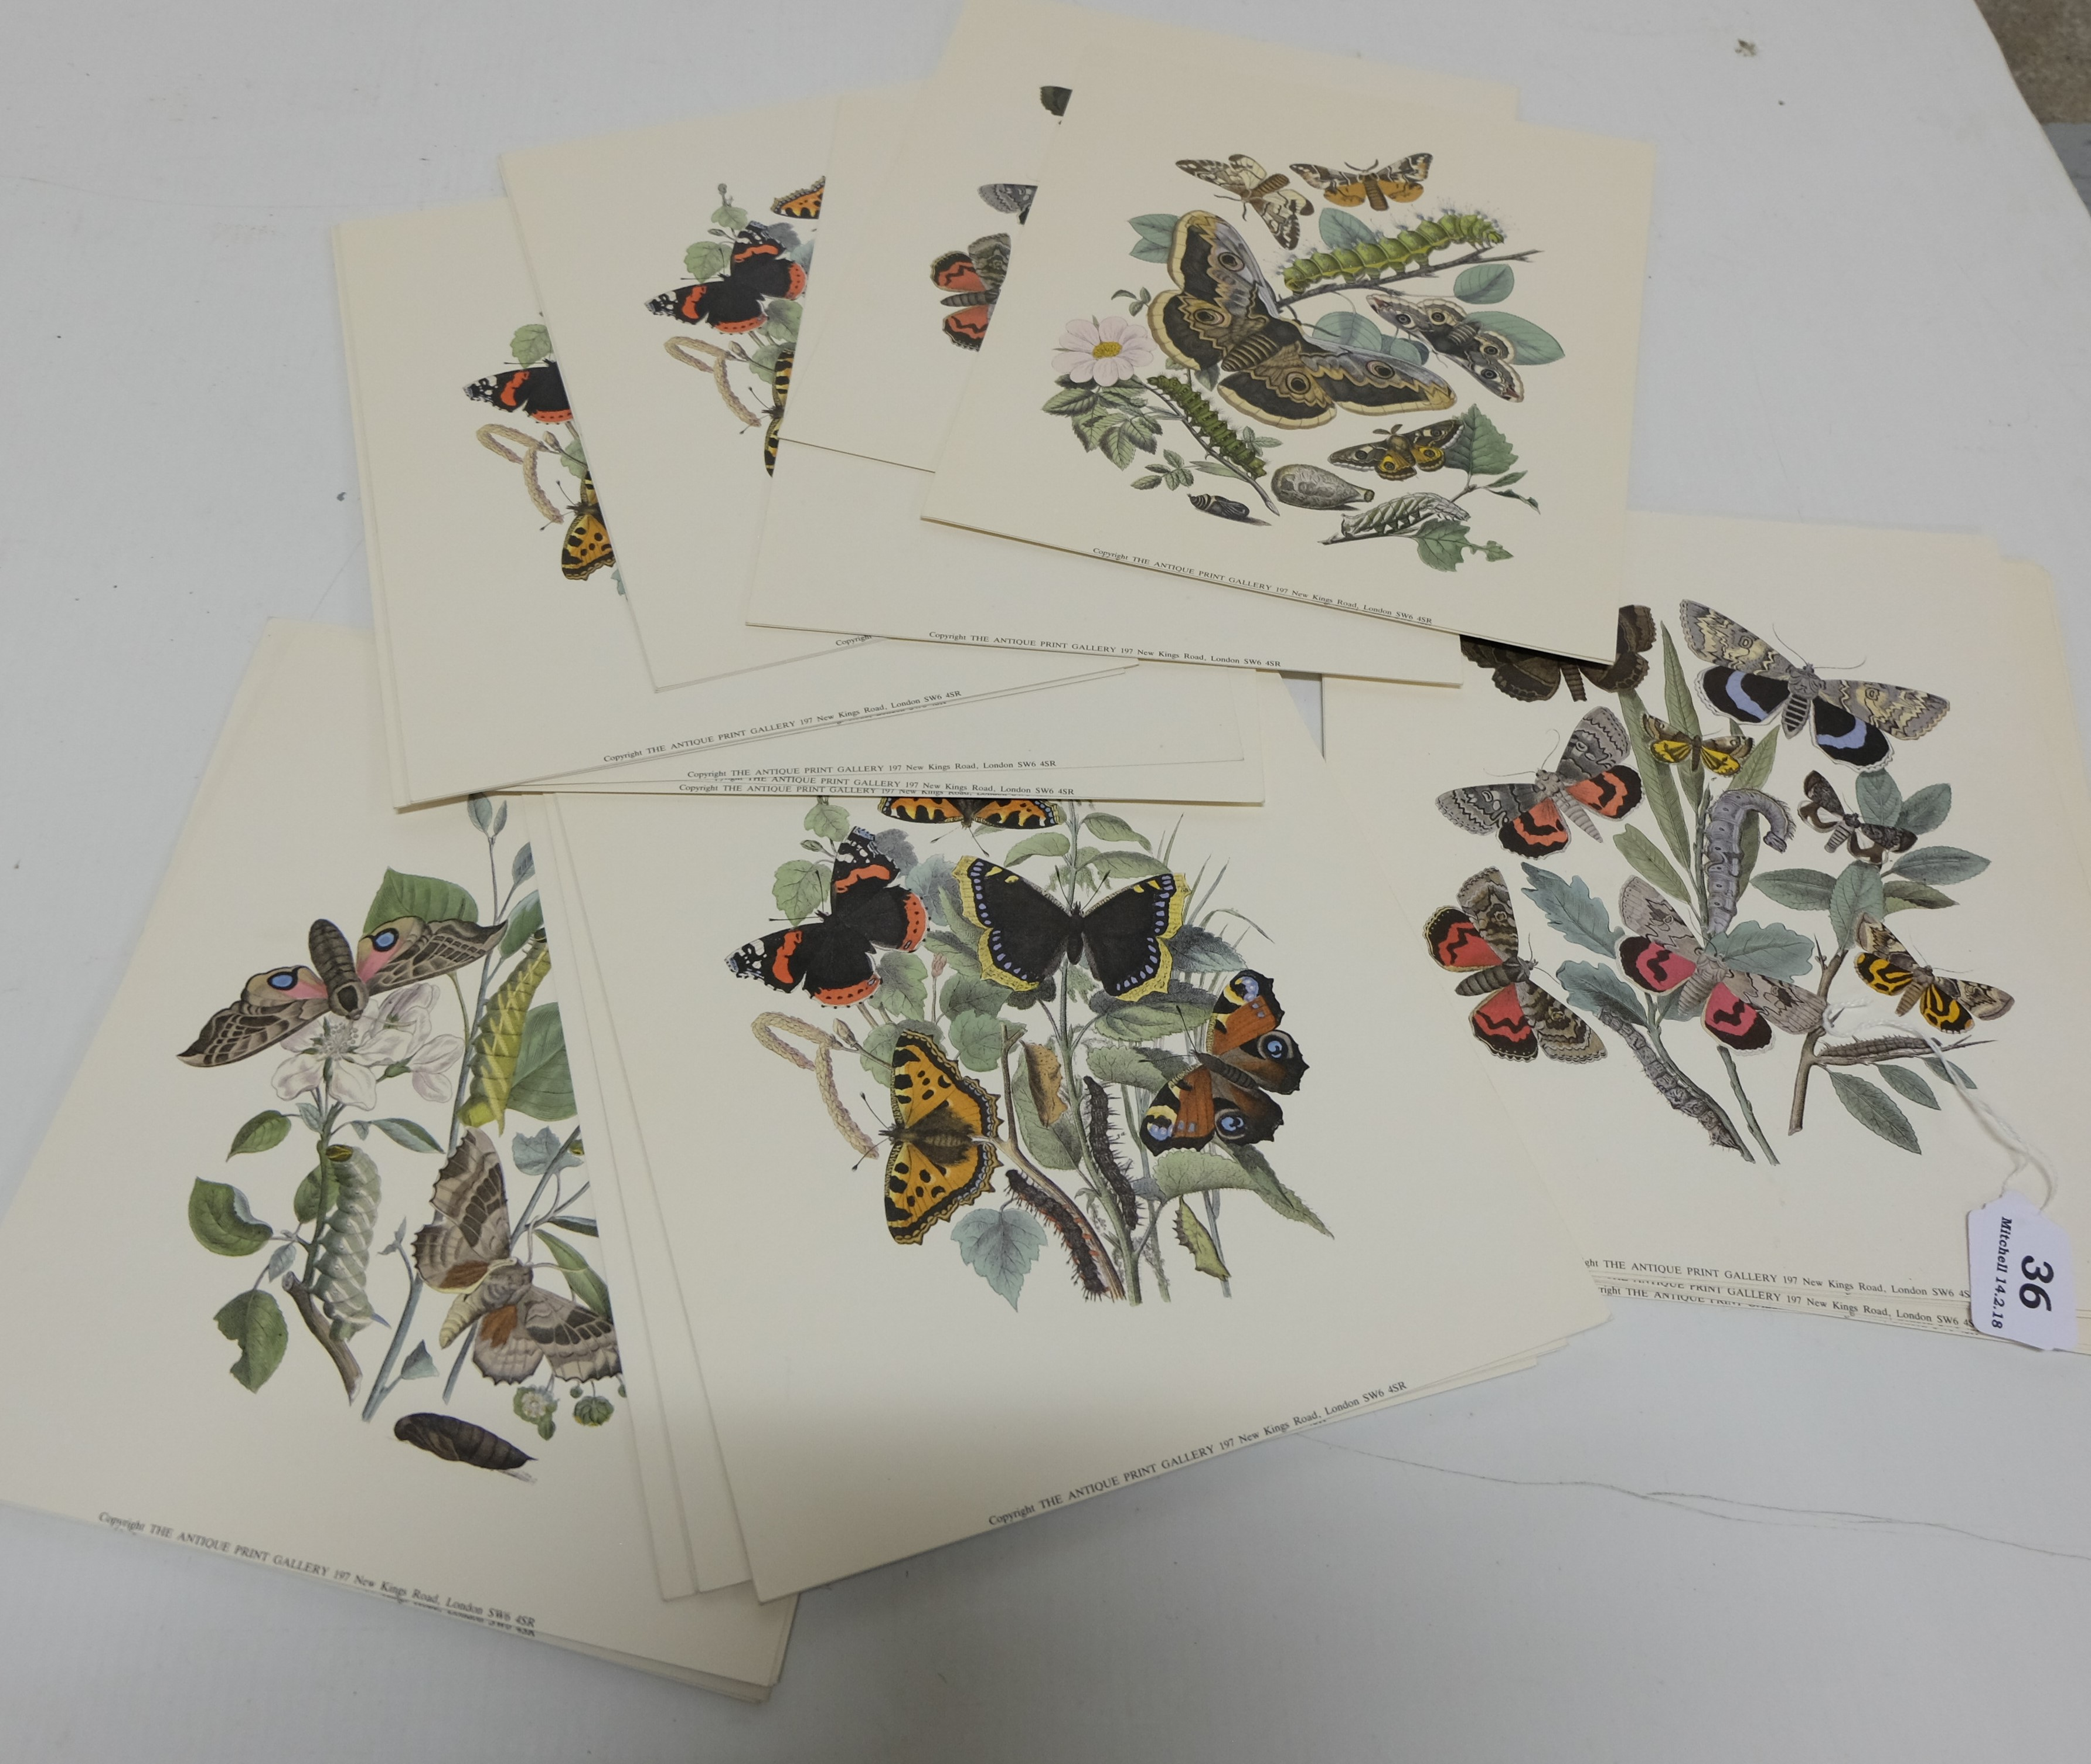 """Lot 36 - Group of Butterfly Prints by the """"Antique Print Gallery, London"""""""